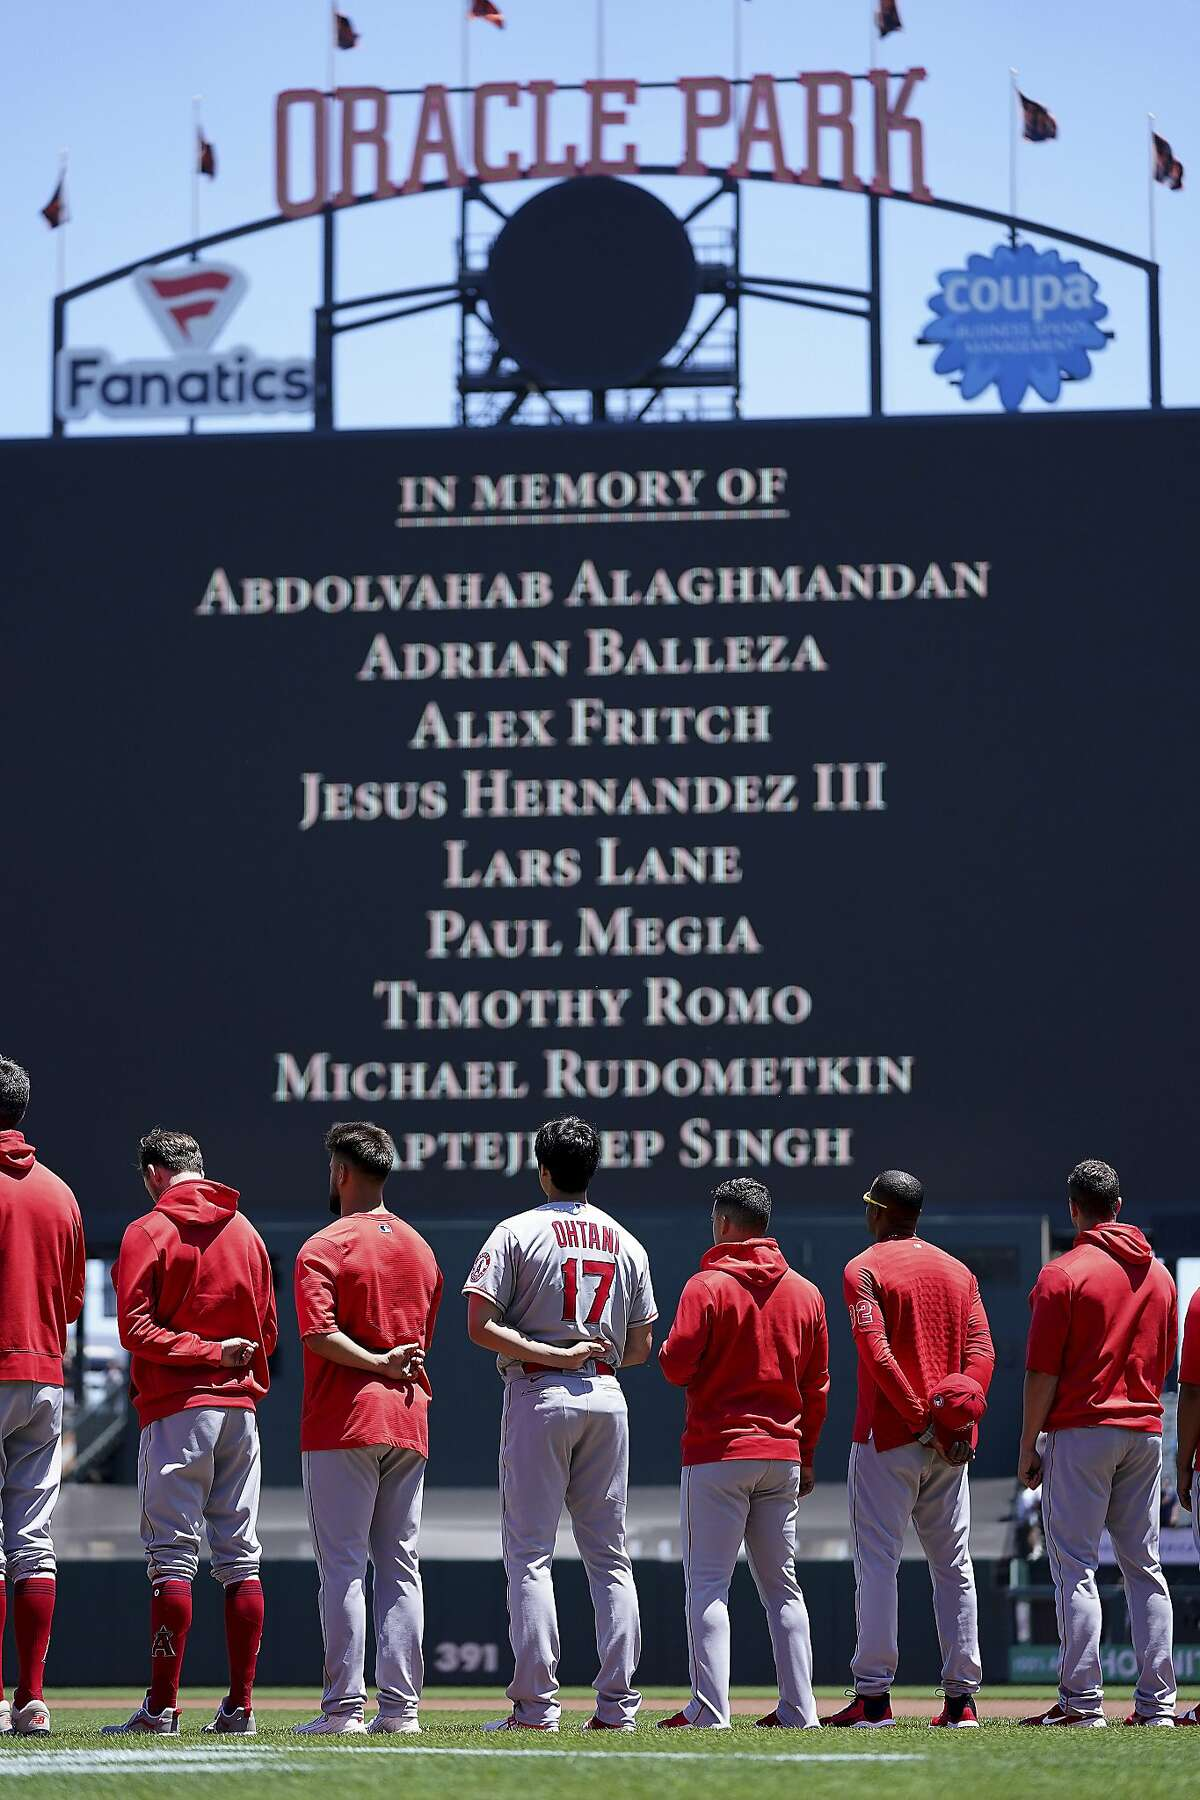 Players observe a moment of silence to honor the shooting victims from San Jose, Calif., before a baseball game between the San Francisco Giants and the Los Angeles Angels, Monday, May 31, 2021, in San Francisco. (AP Photo/Tony Avelar)